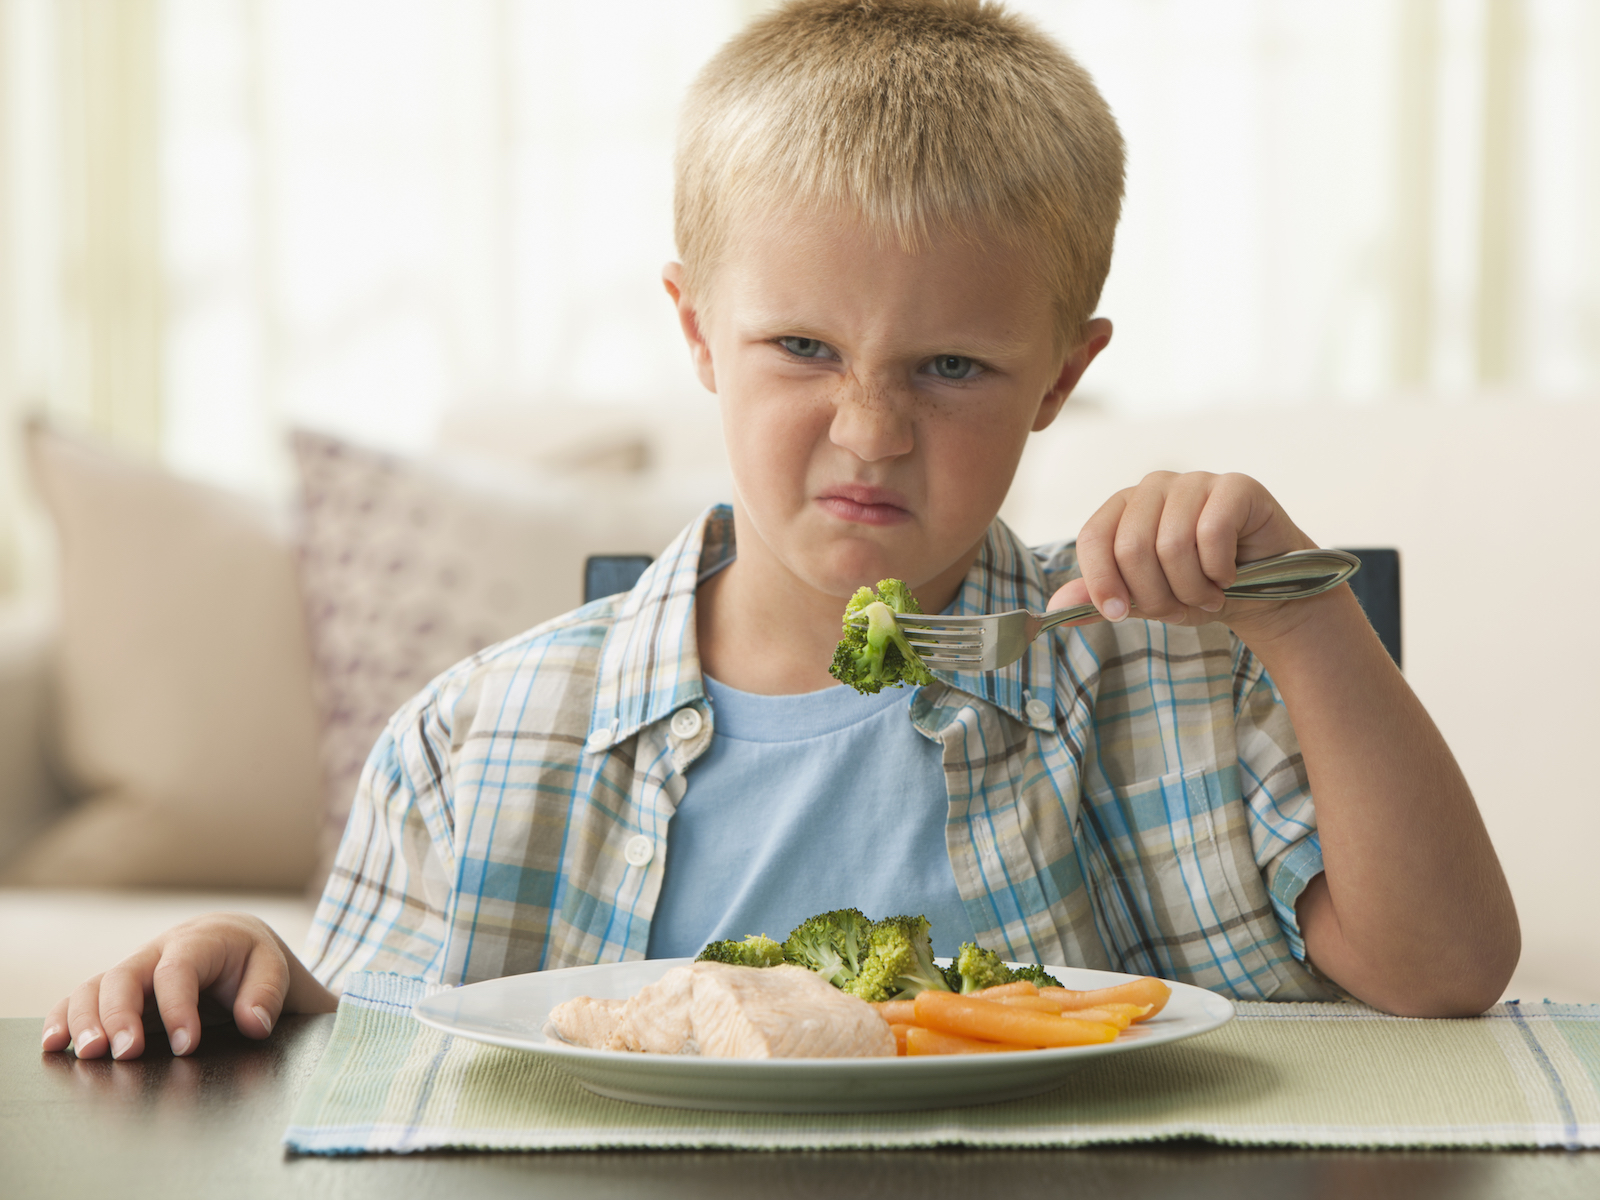 Picky eating gene mutation